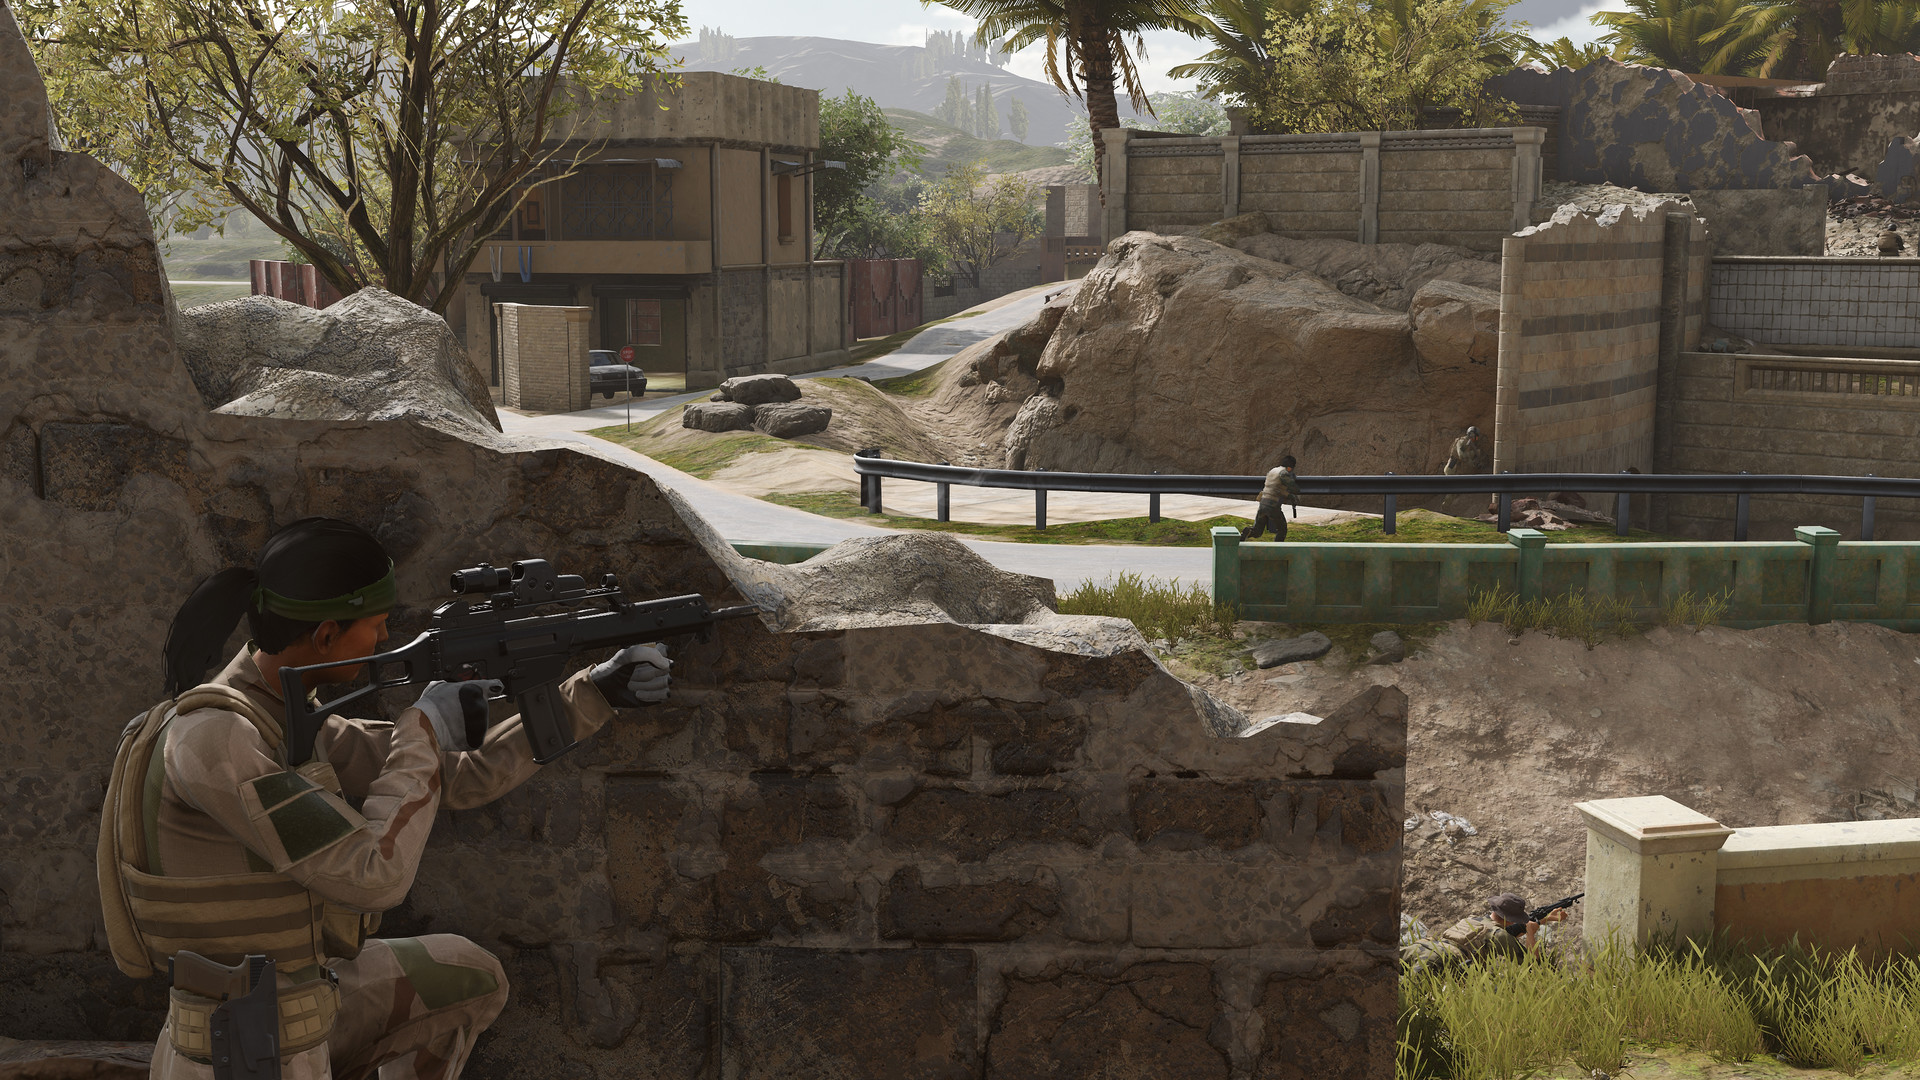 Insurgency: Sandstorm release delayed